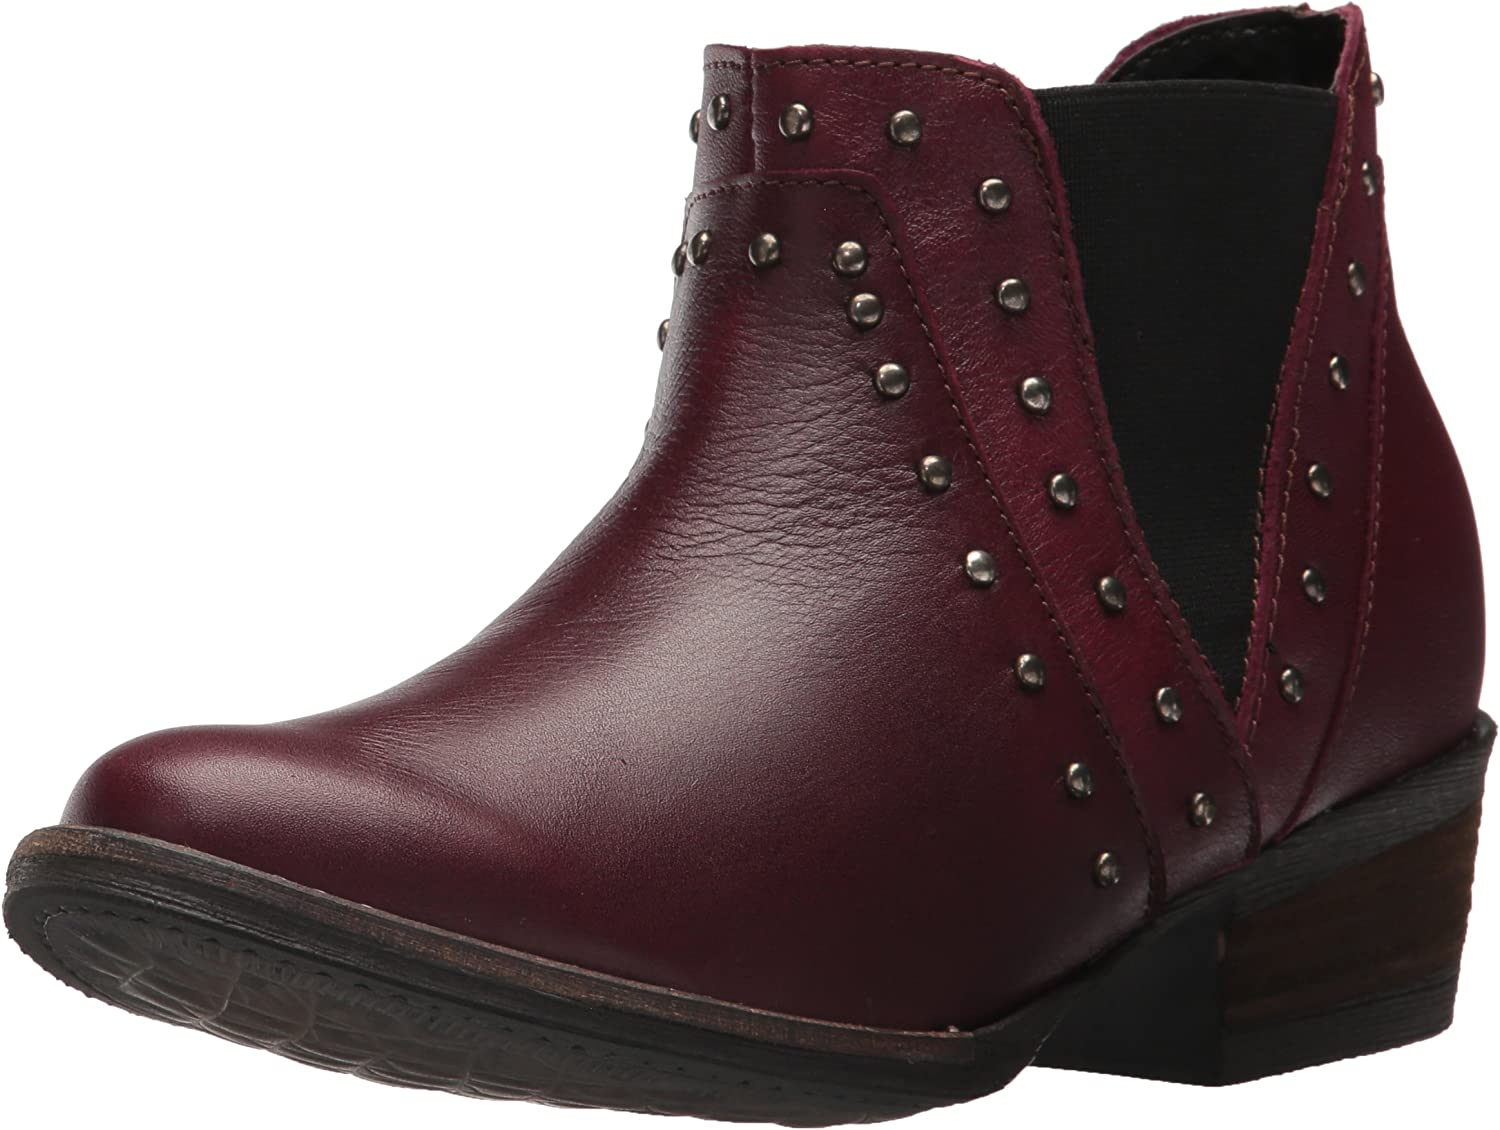 75943ad665c1e Mas Artisan Abigail Ankle Bootie Womens nsuluh3426-New Shoes ...